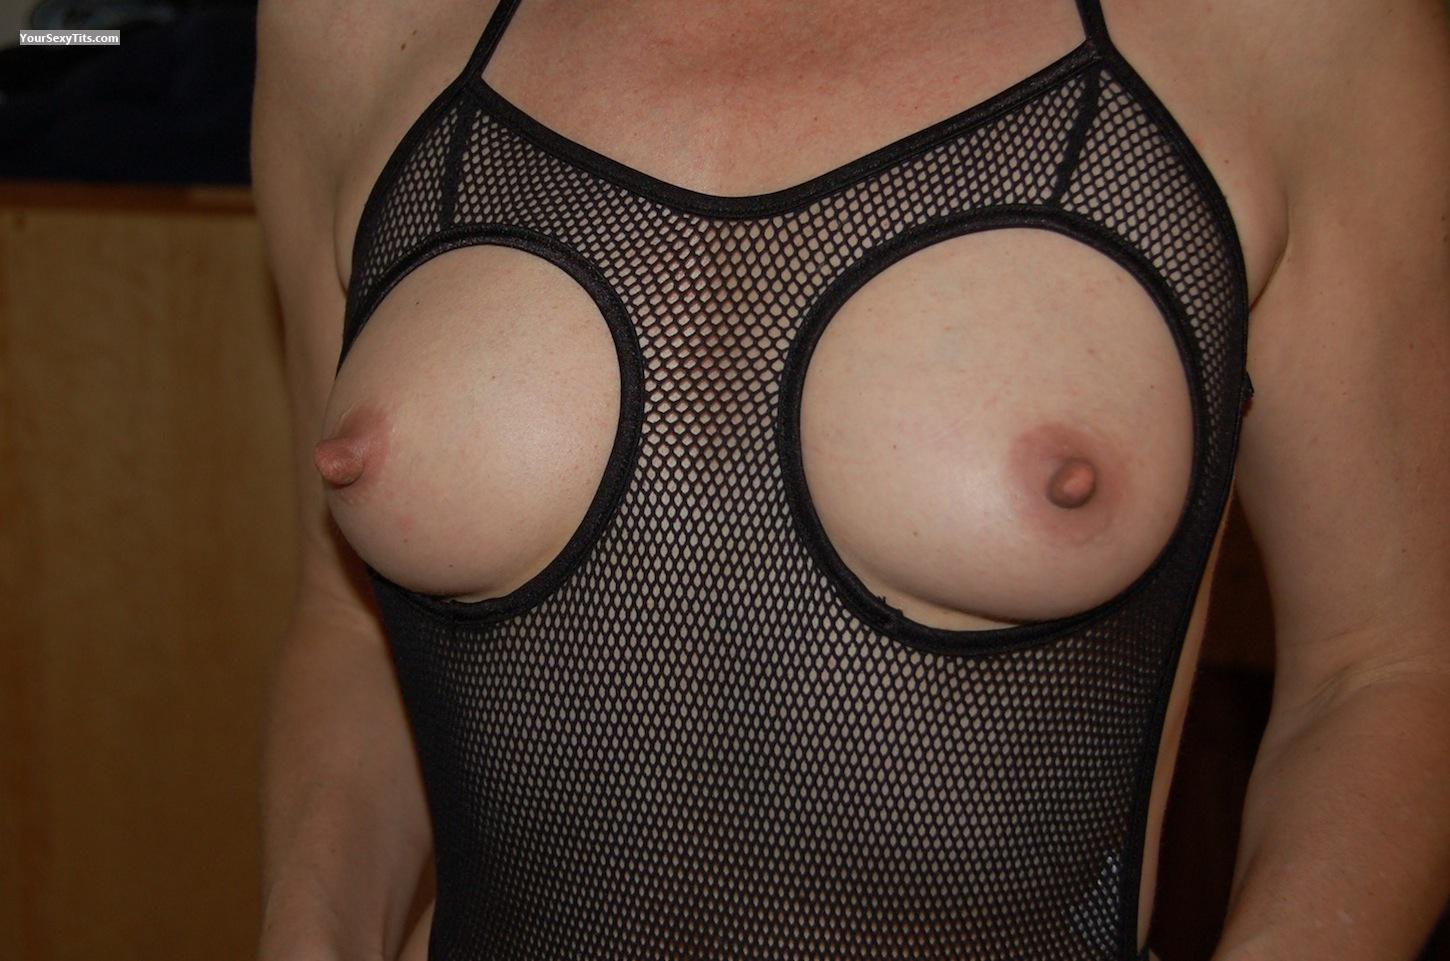 Small Tits Of My Wife Kara